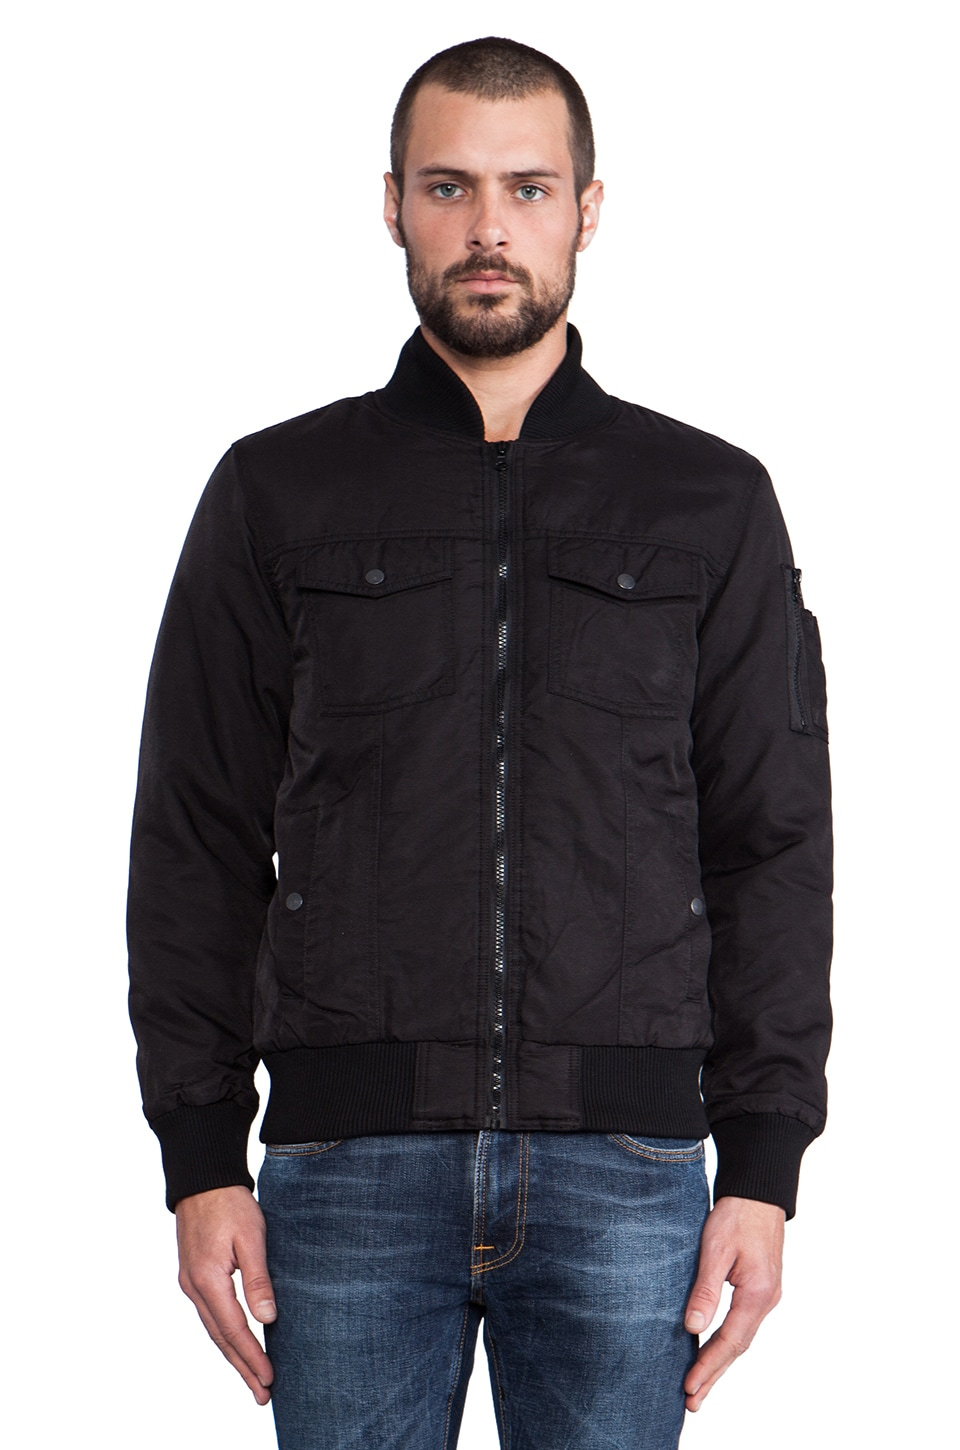 NEUW Rocker Bomber Jacket in Black